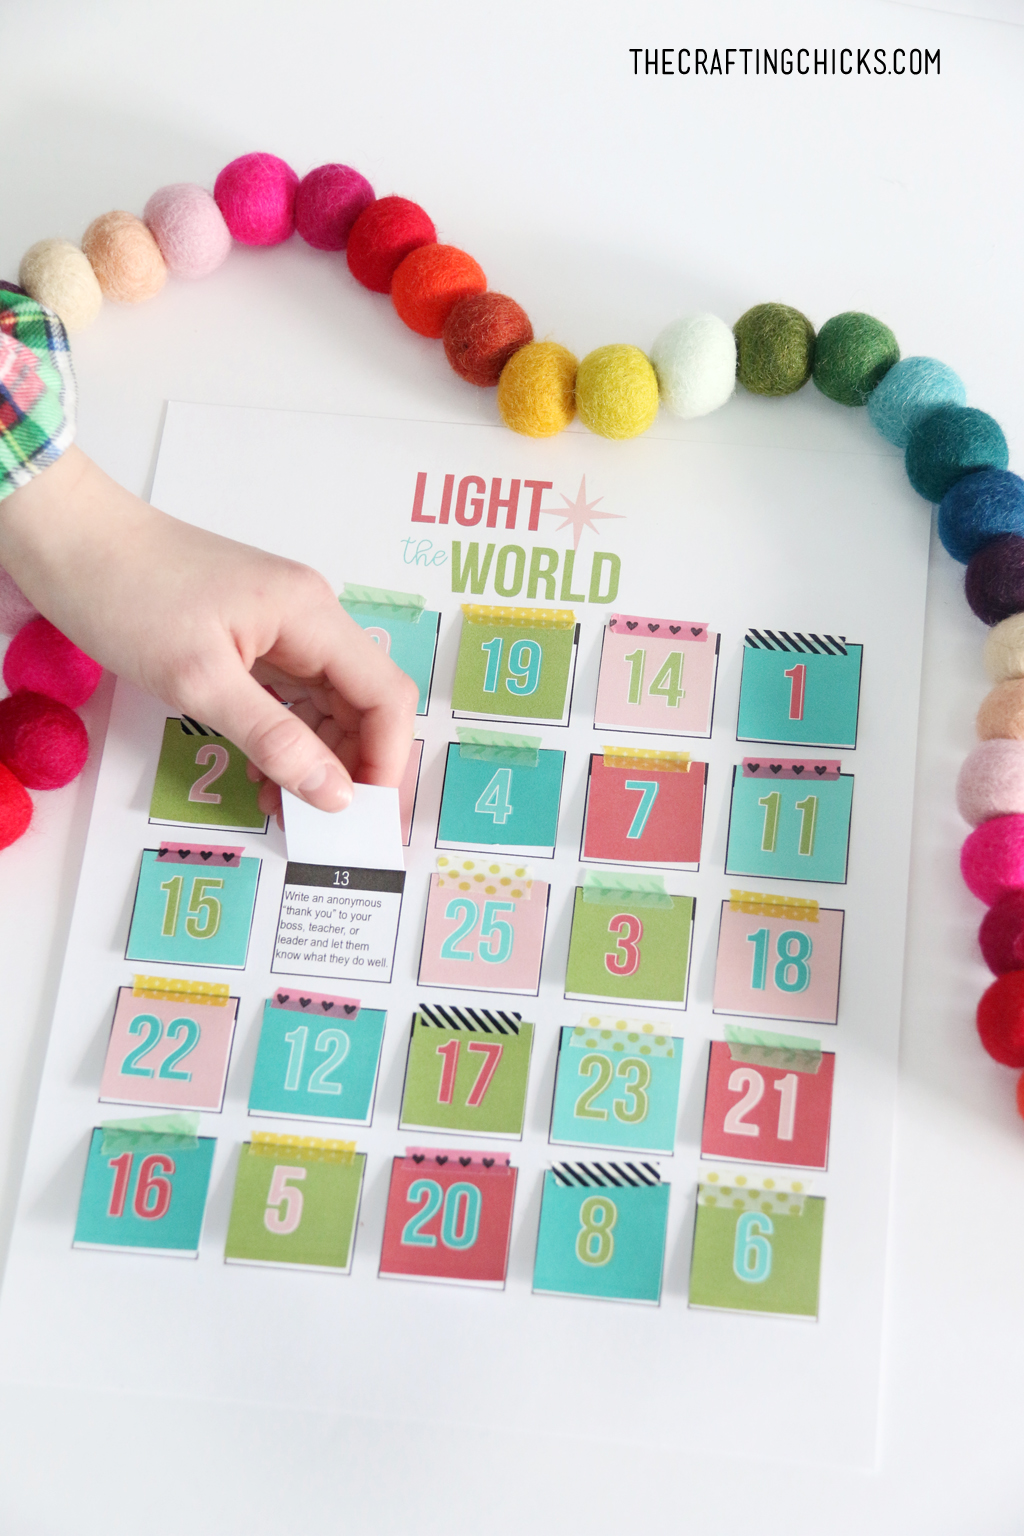 We put together this fun Light the World Advent printable to make it easy for you to do in your own home.